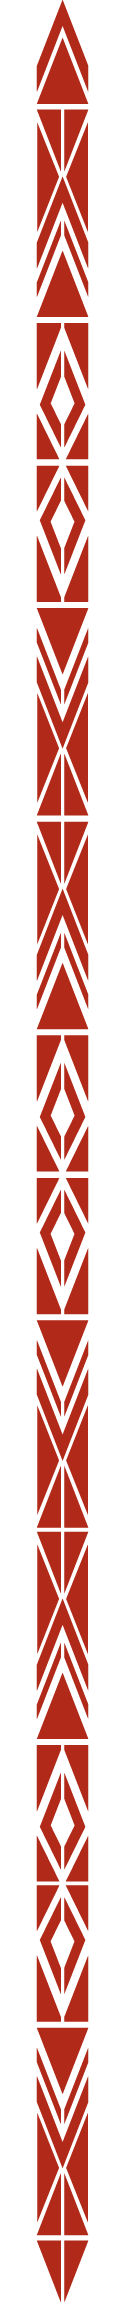 RT-divider-aztec-pole.png